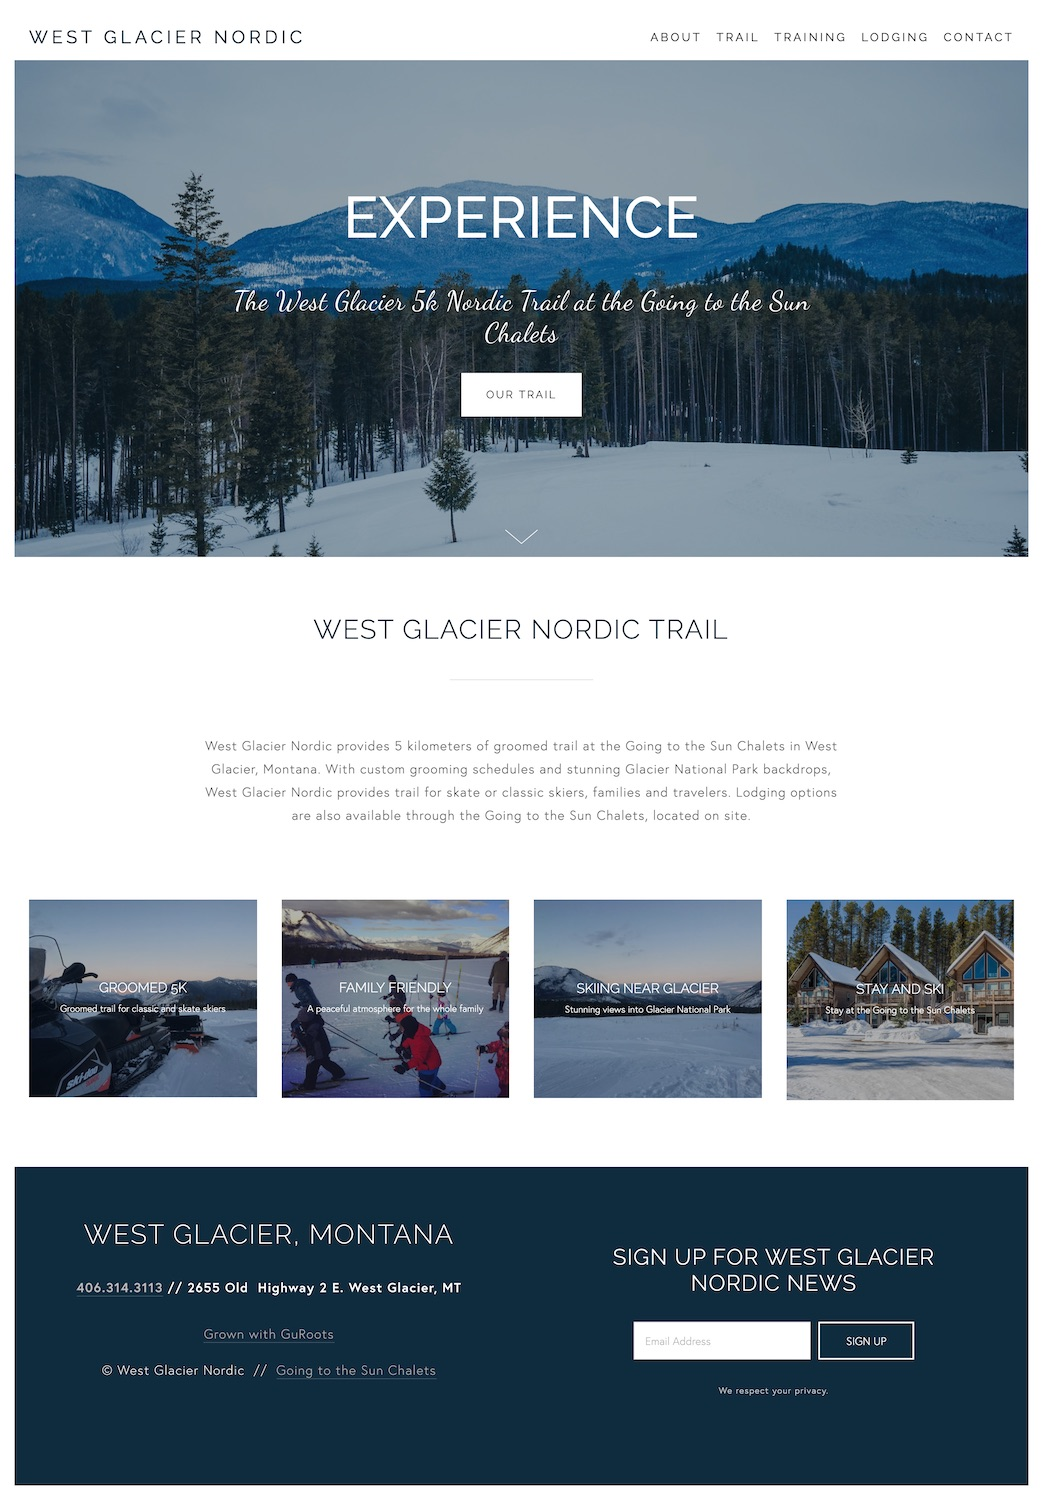 Nordic SkiingWebsite Design - Location: West Glacier, MontanaWebsite design built for a Glacier National Park 5k nordic track located in West Glacier, MT. This responsive website features trail updates, lodging options and custom contact form.tags: glacier website design, skiing web design, nordic skiing web design, snow website design, responsive websites, montana web design, mobile-friendly, ssl certificate, squarespace expert, squarespace authorized trainer